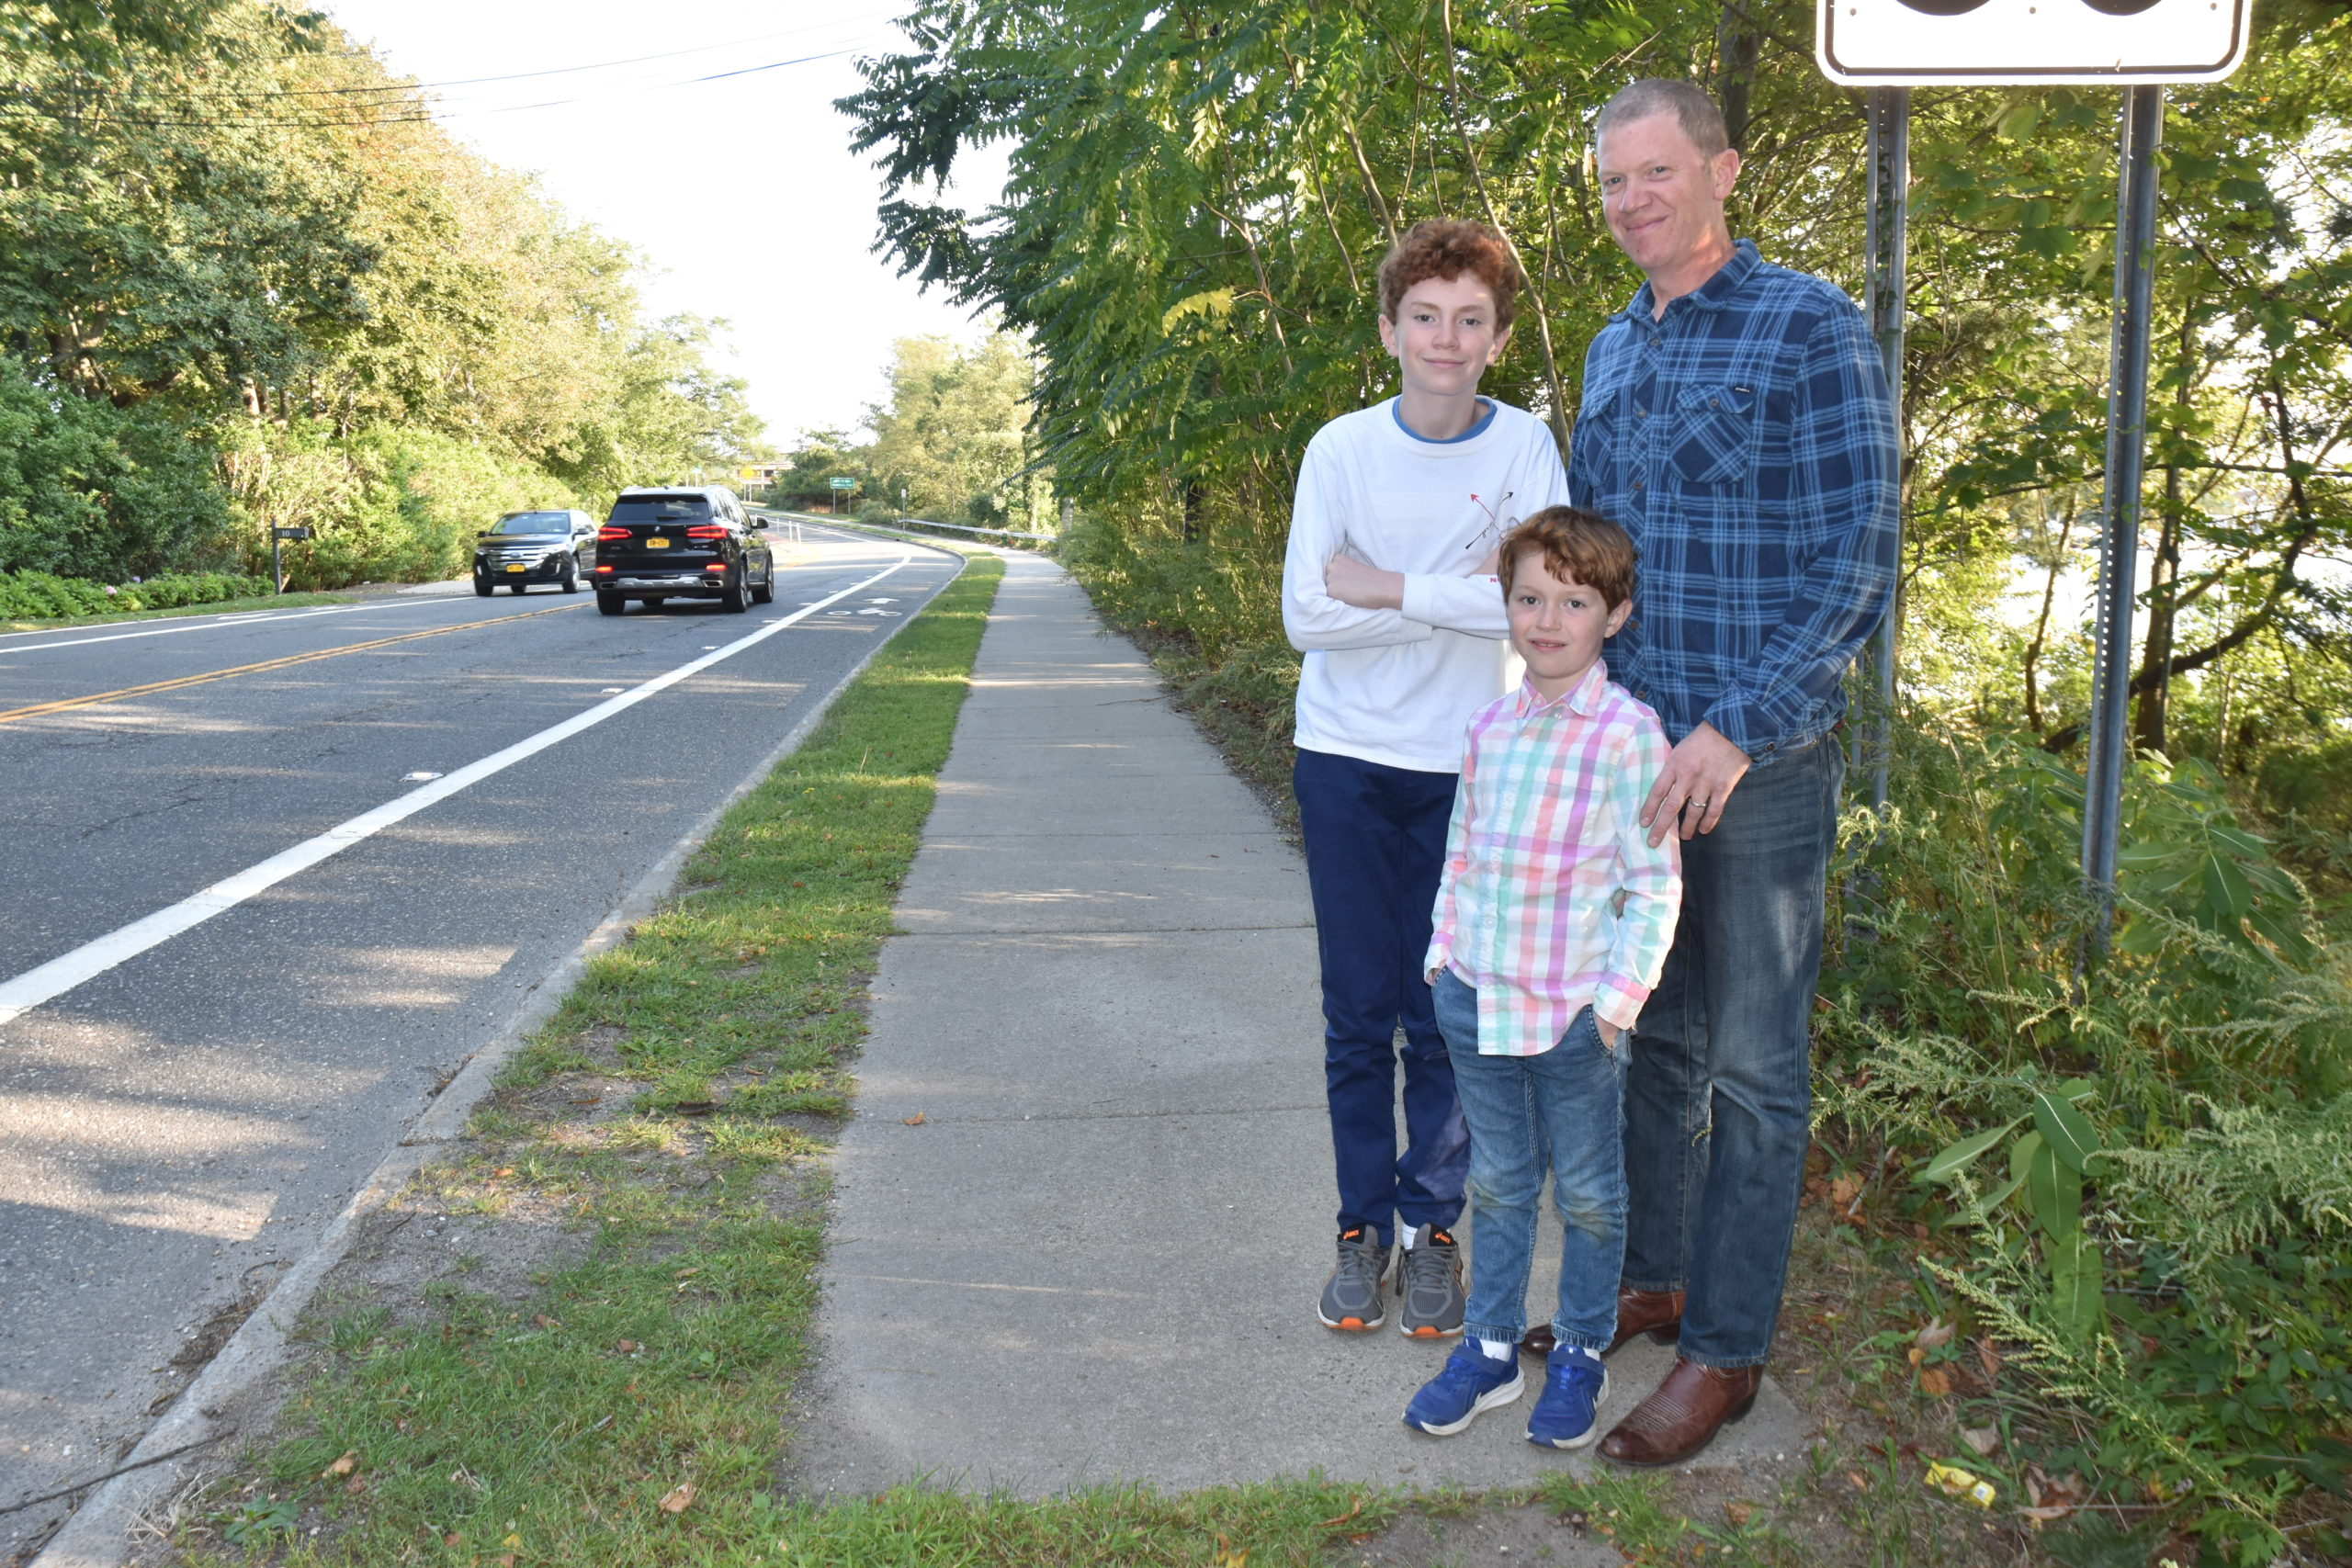 North Haven resident Alex Kriegsman, with his sons David, center, left, and Roger, is calling for safer bicycle and pedestrtian lanes along Route 114 in the village. STEPHEN J. KOTZ